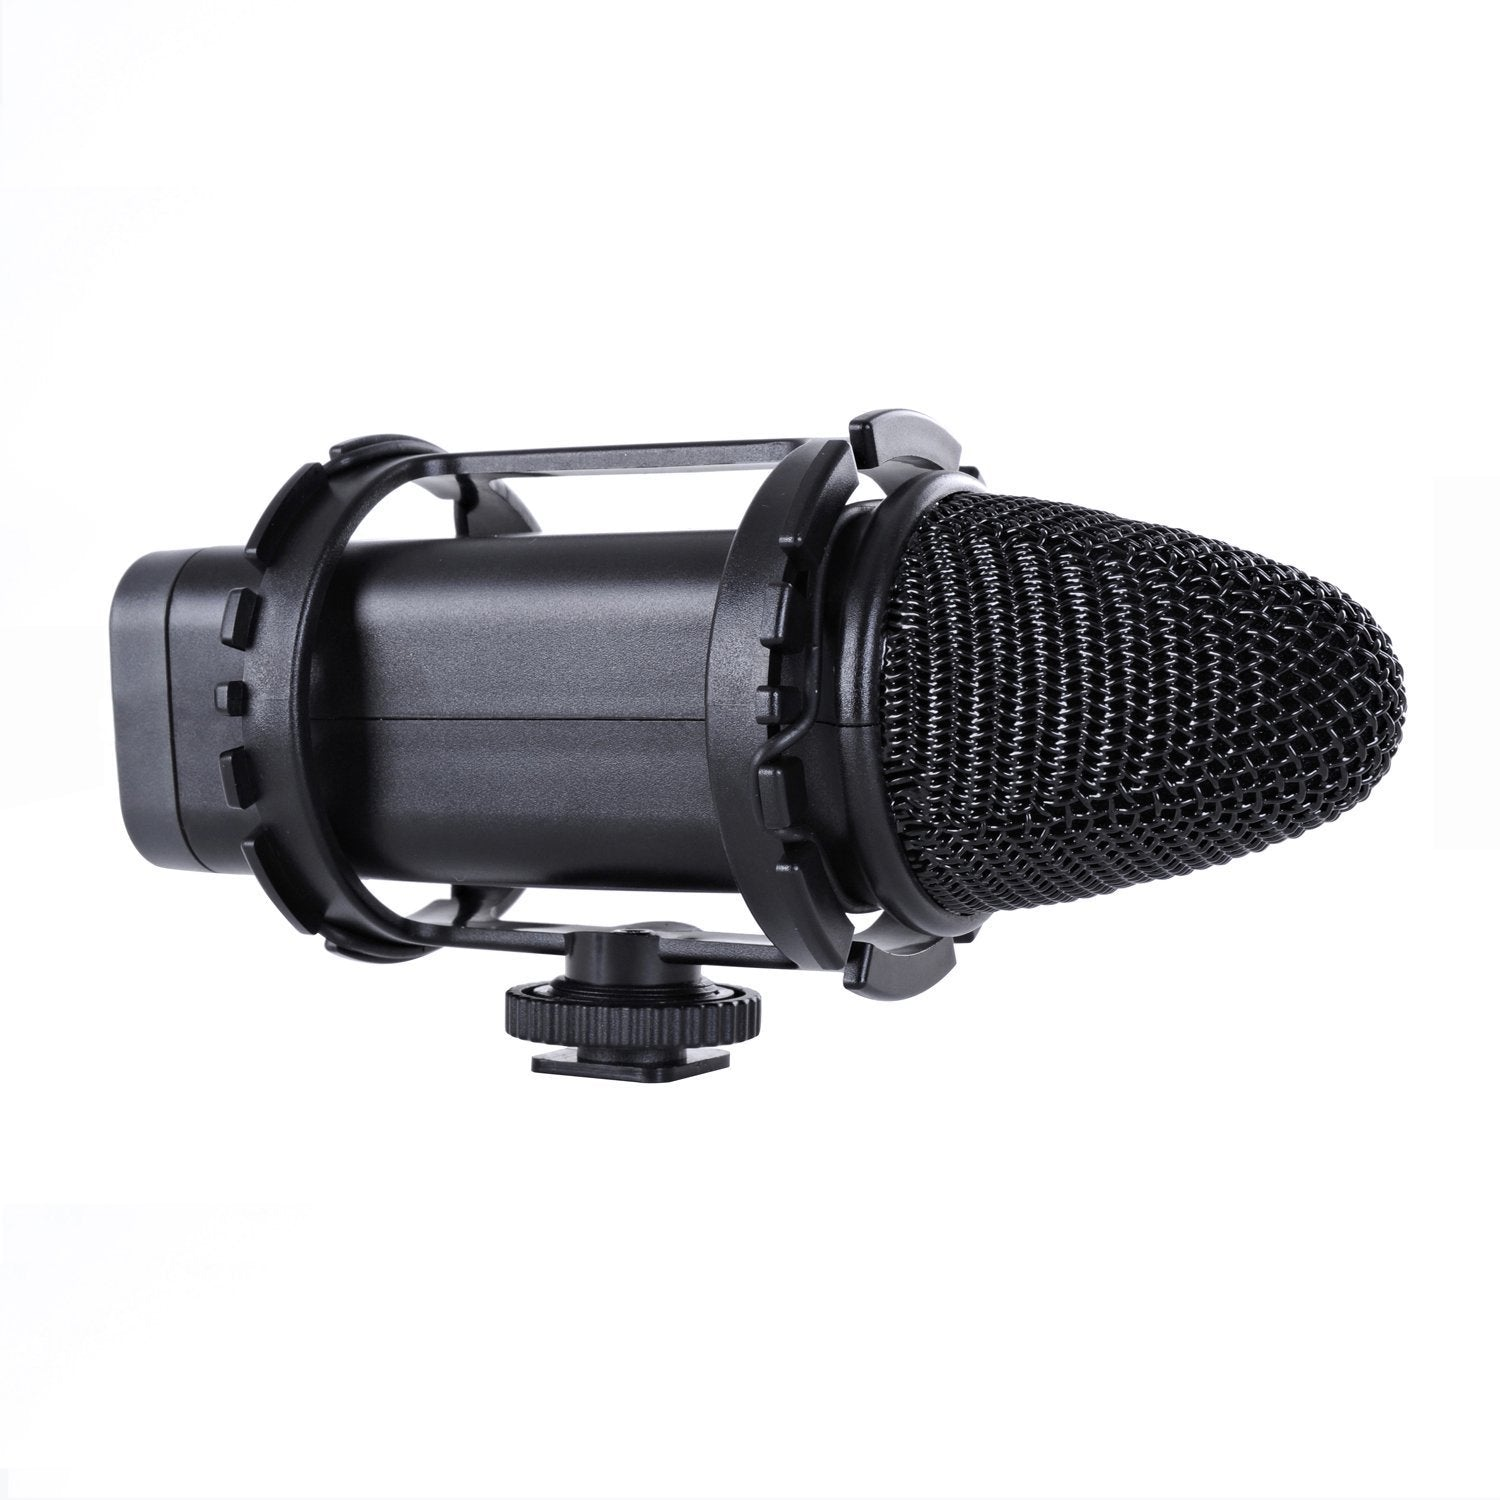 "BOYA BY-C03 Camera Shoe Shockmount for Shotgun Microphones 1"" to 2"" in Diameter (Fits the Zoom H1)"